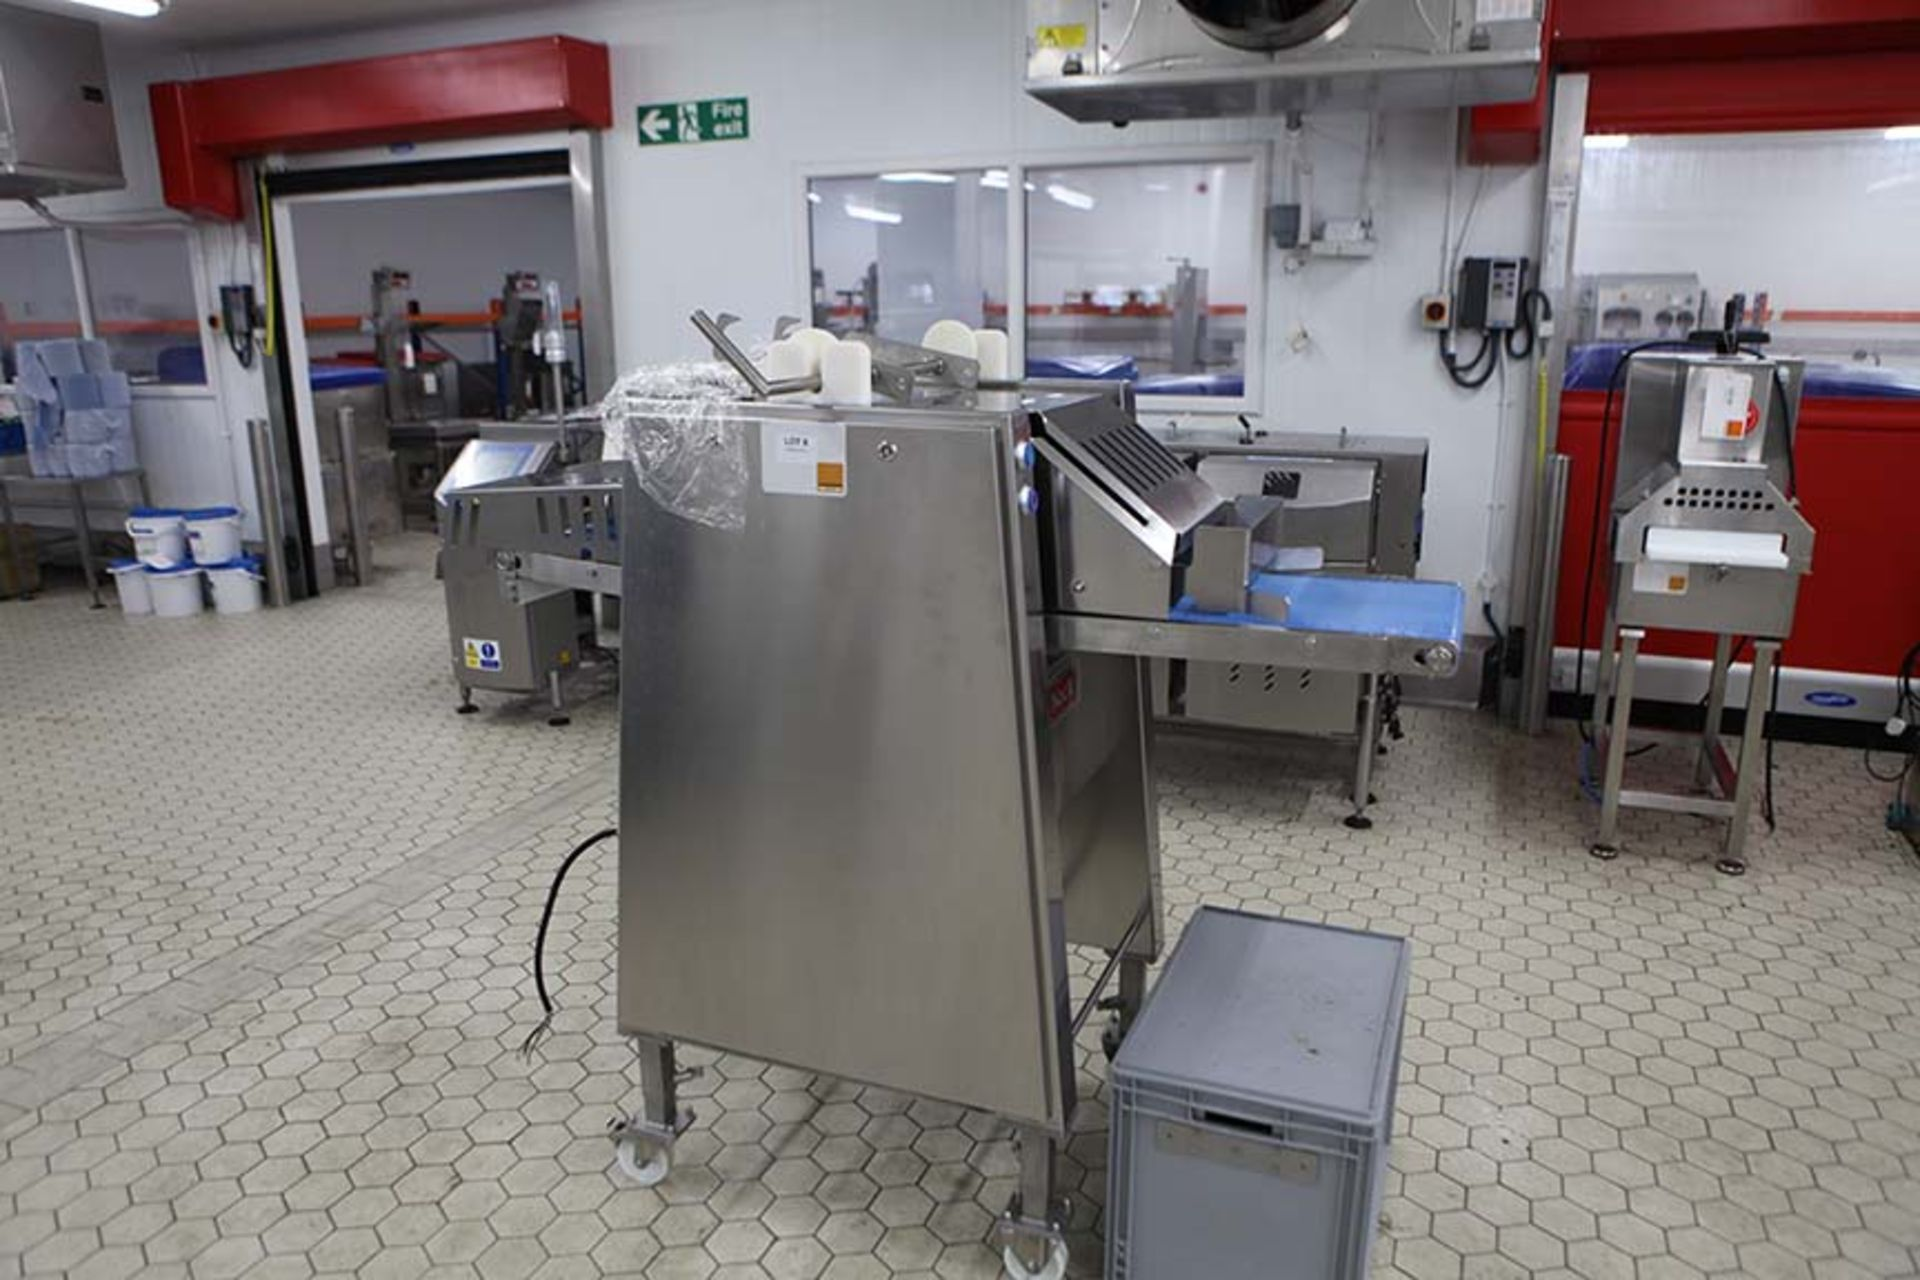 Lot 8 - NOCK CB435-4E Compact Slicer 2017 Sn 2856740 with Blade storage unit